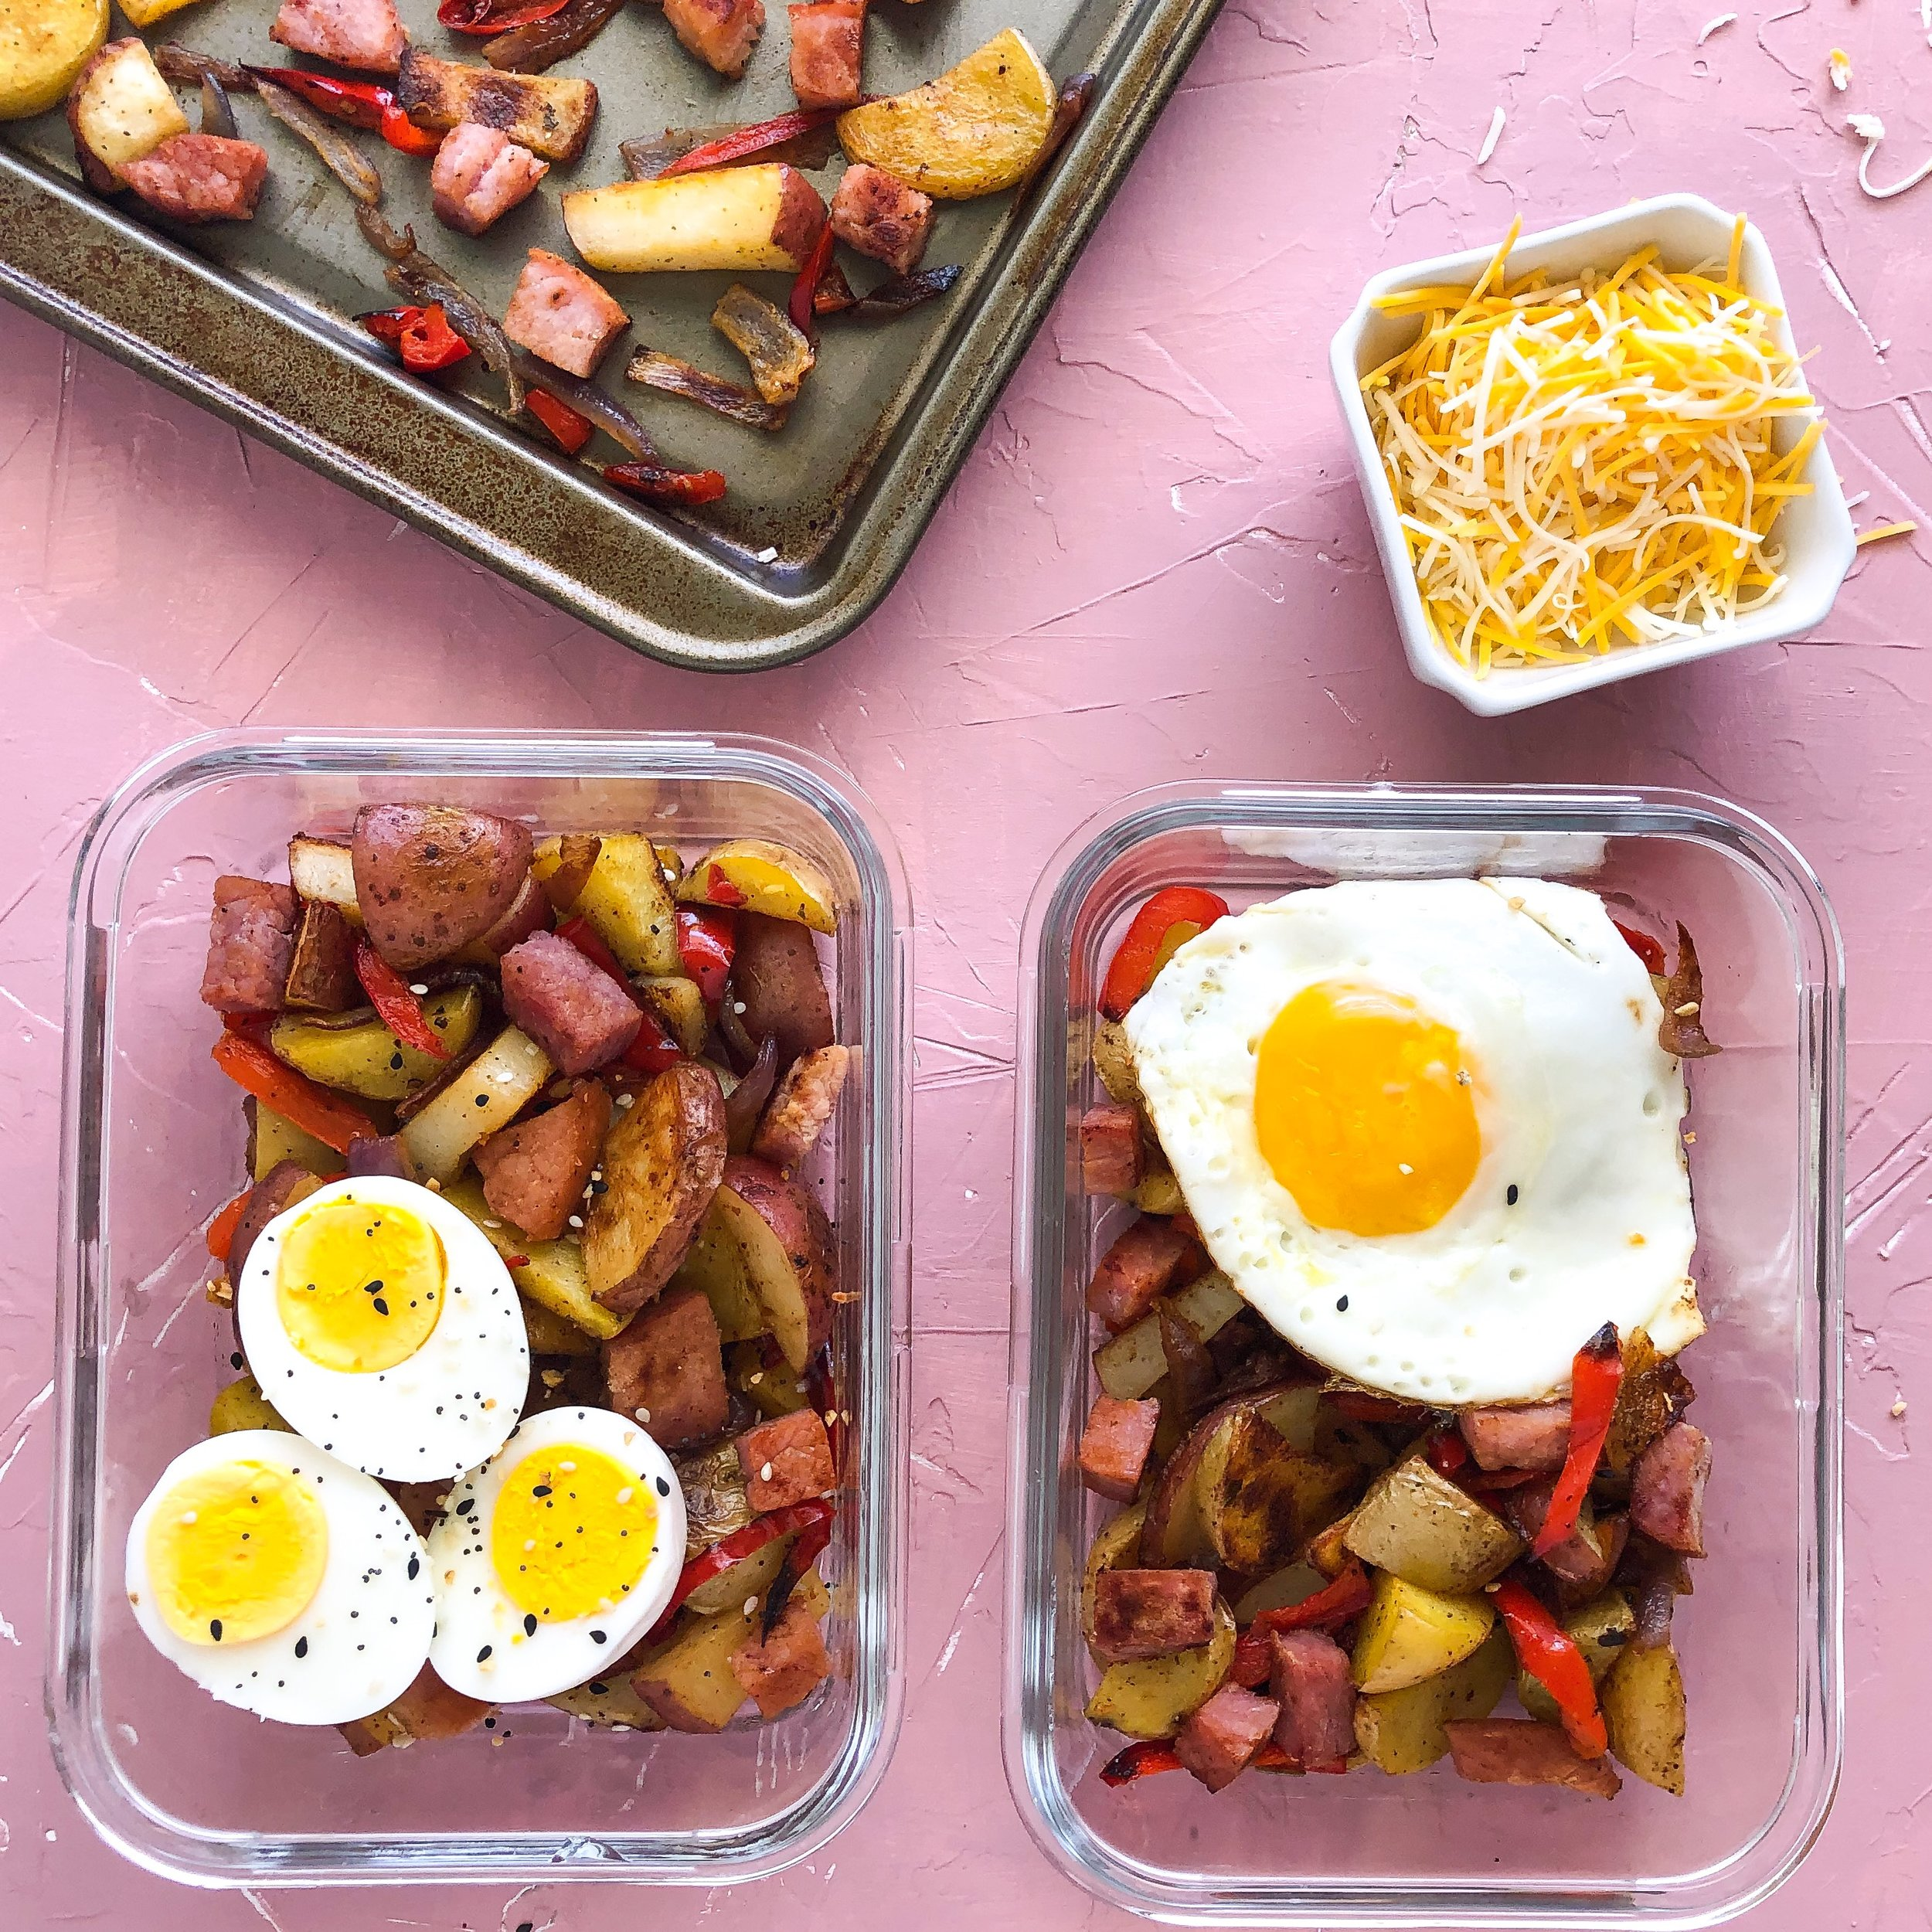 Denver style breakfast, sheetpan breakfast, meal prep 5